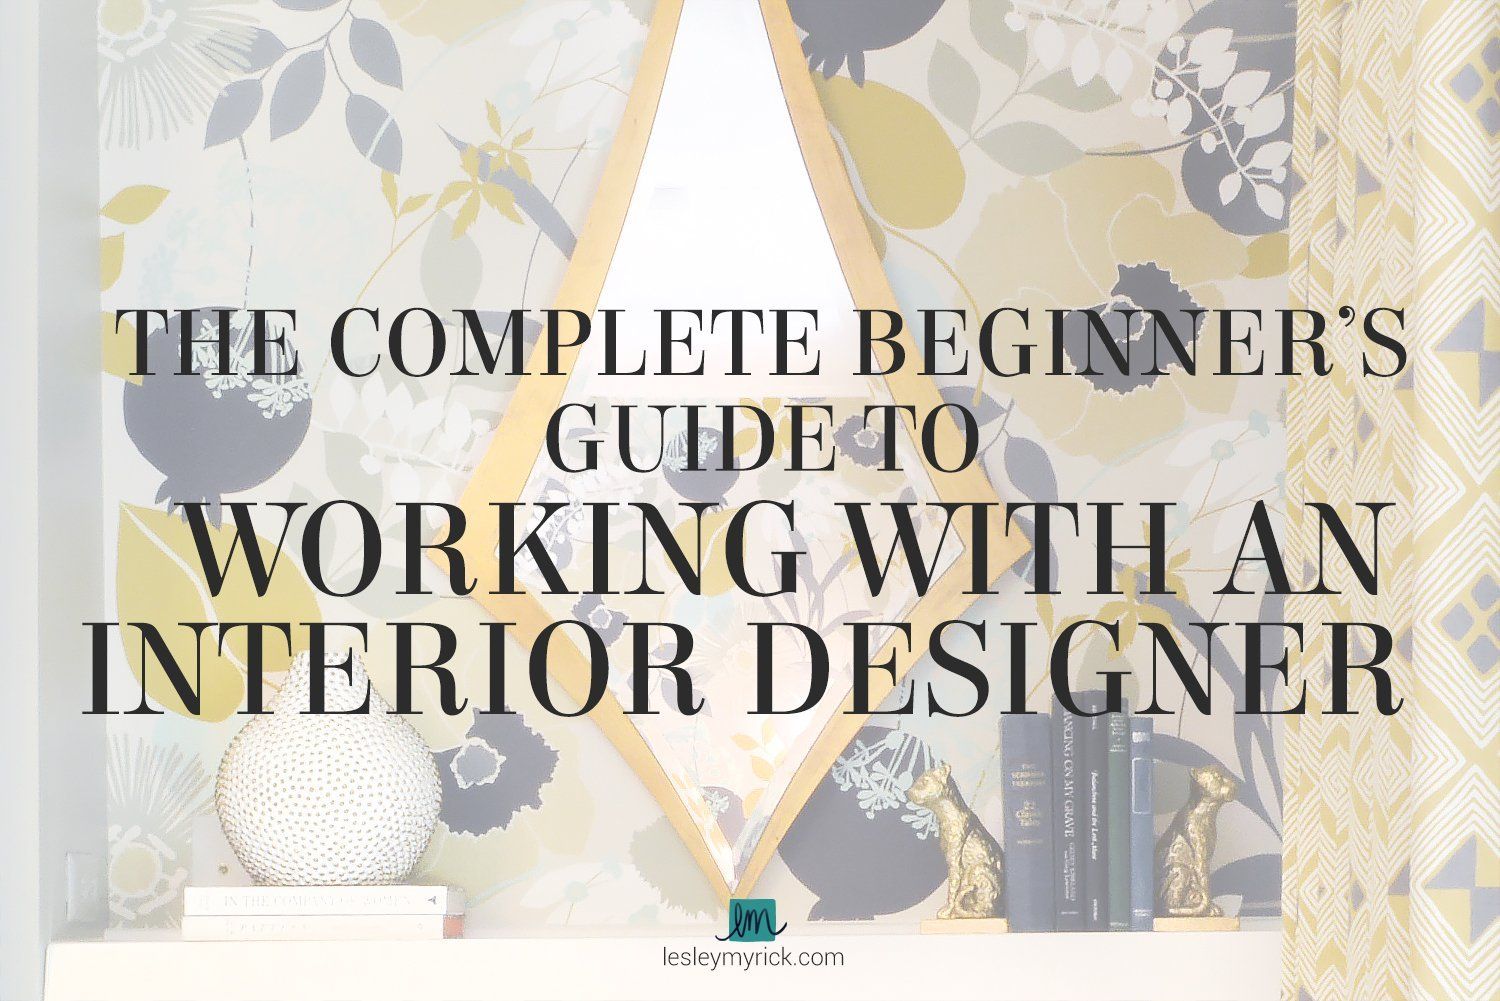 The Complete Beginner's Guide to Working with an Interior Designer! Take a look at what really goes into a design project.